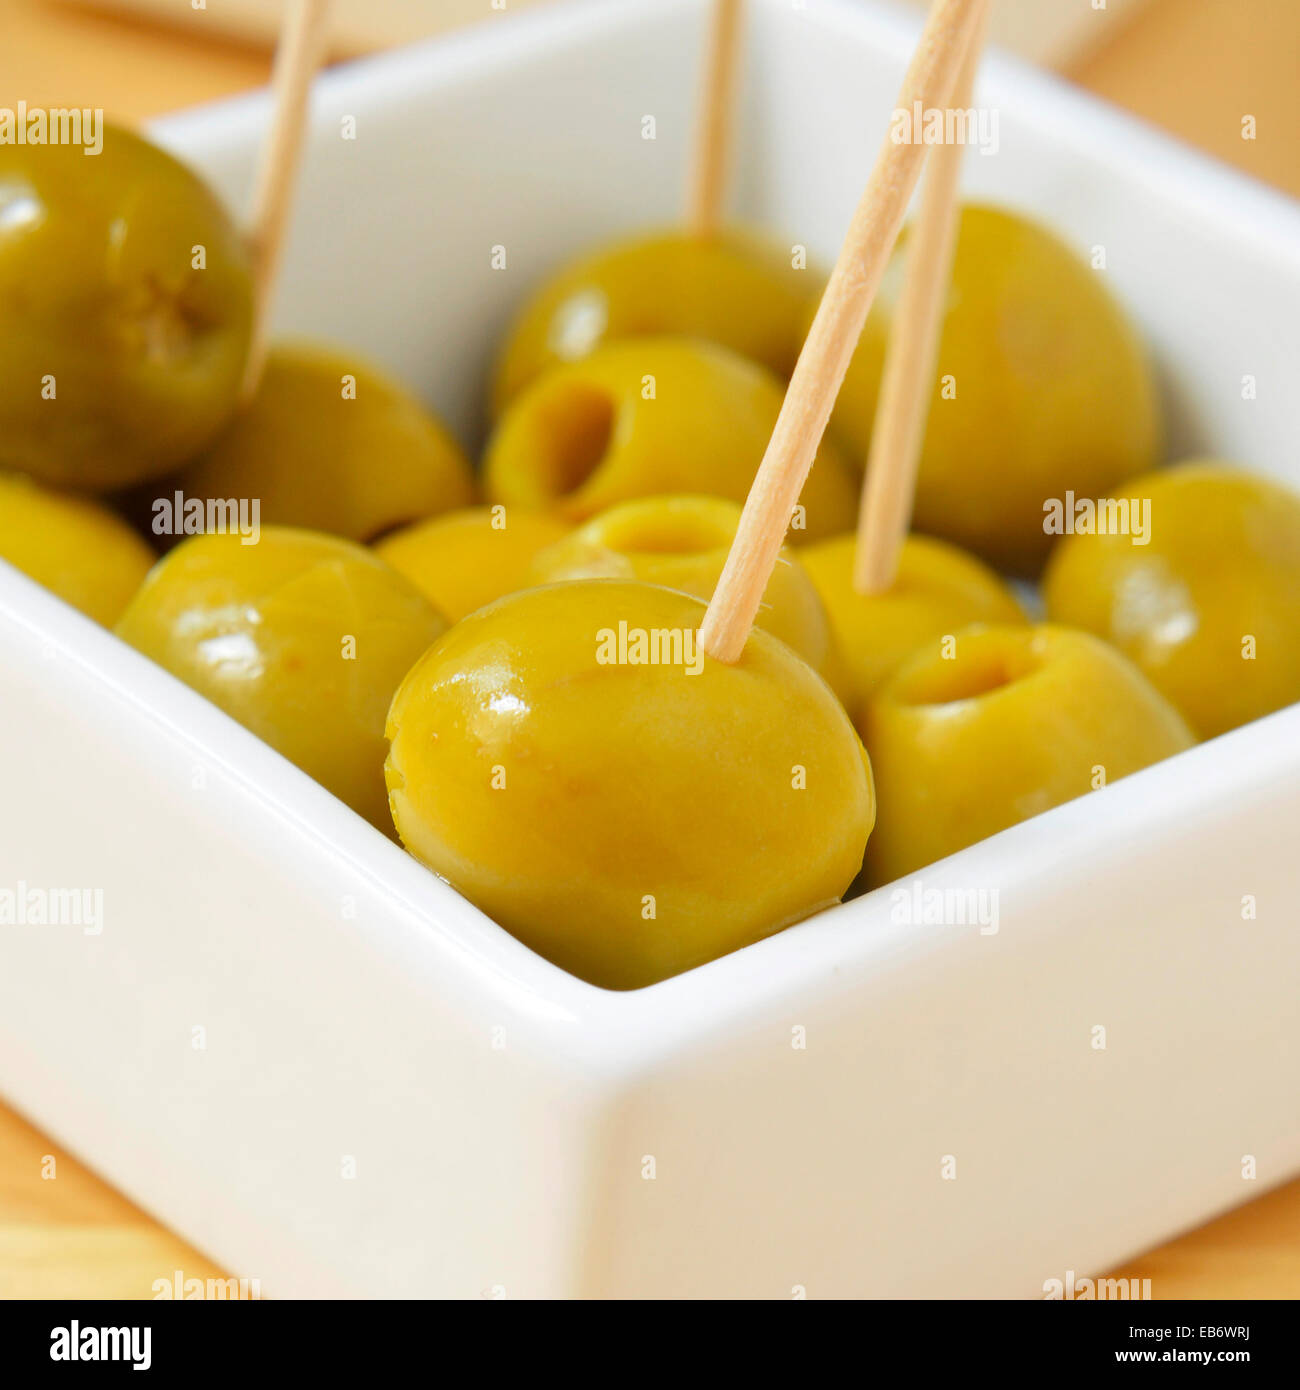 a bowl with olives with toothpicks served as tapas - Stock Image